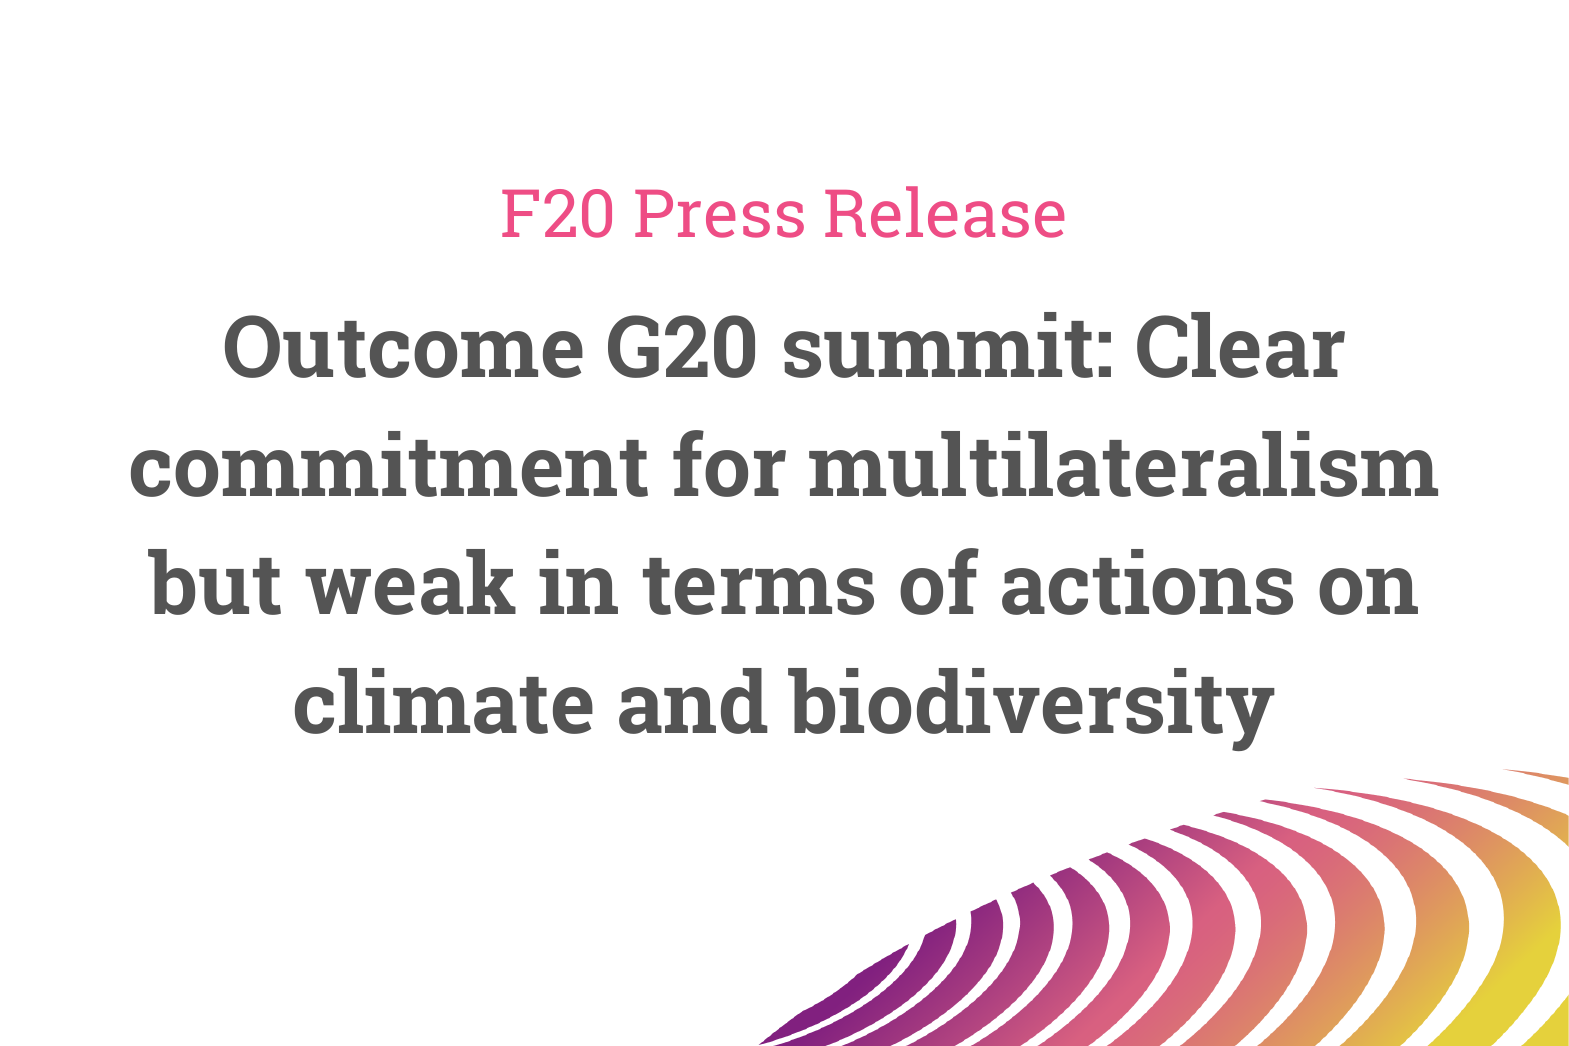 Outcome G20 summit: Clear commitment for multilateralism but weak in terms of actions on climate and biodiversity – Press Release of the Foundations Platform F20